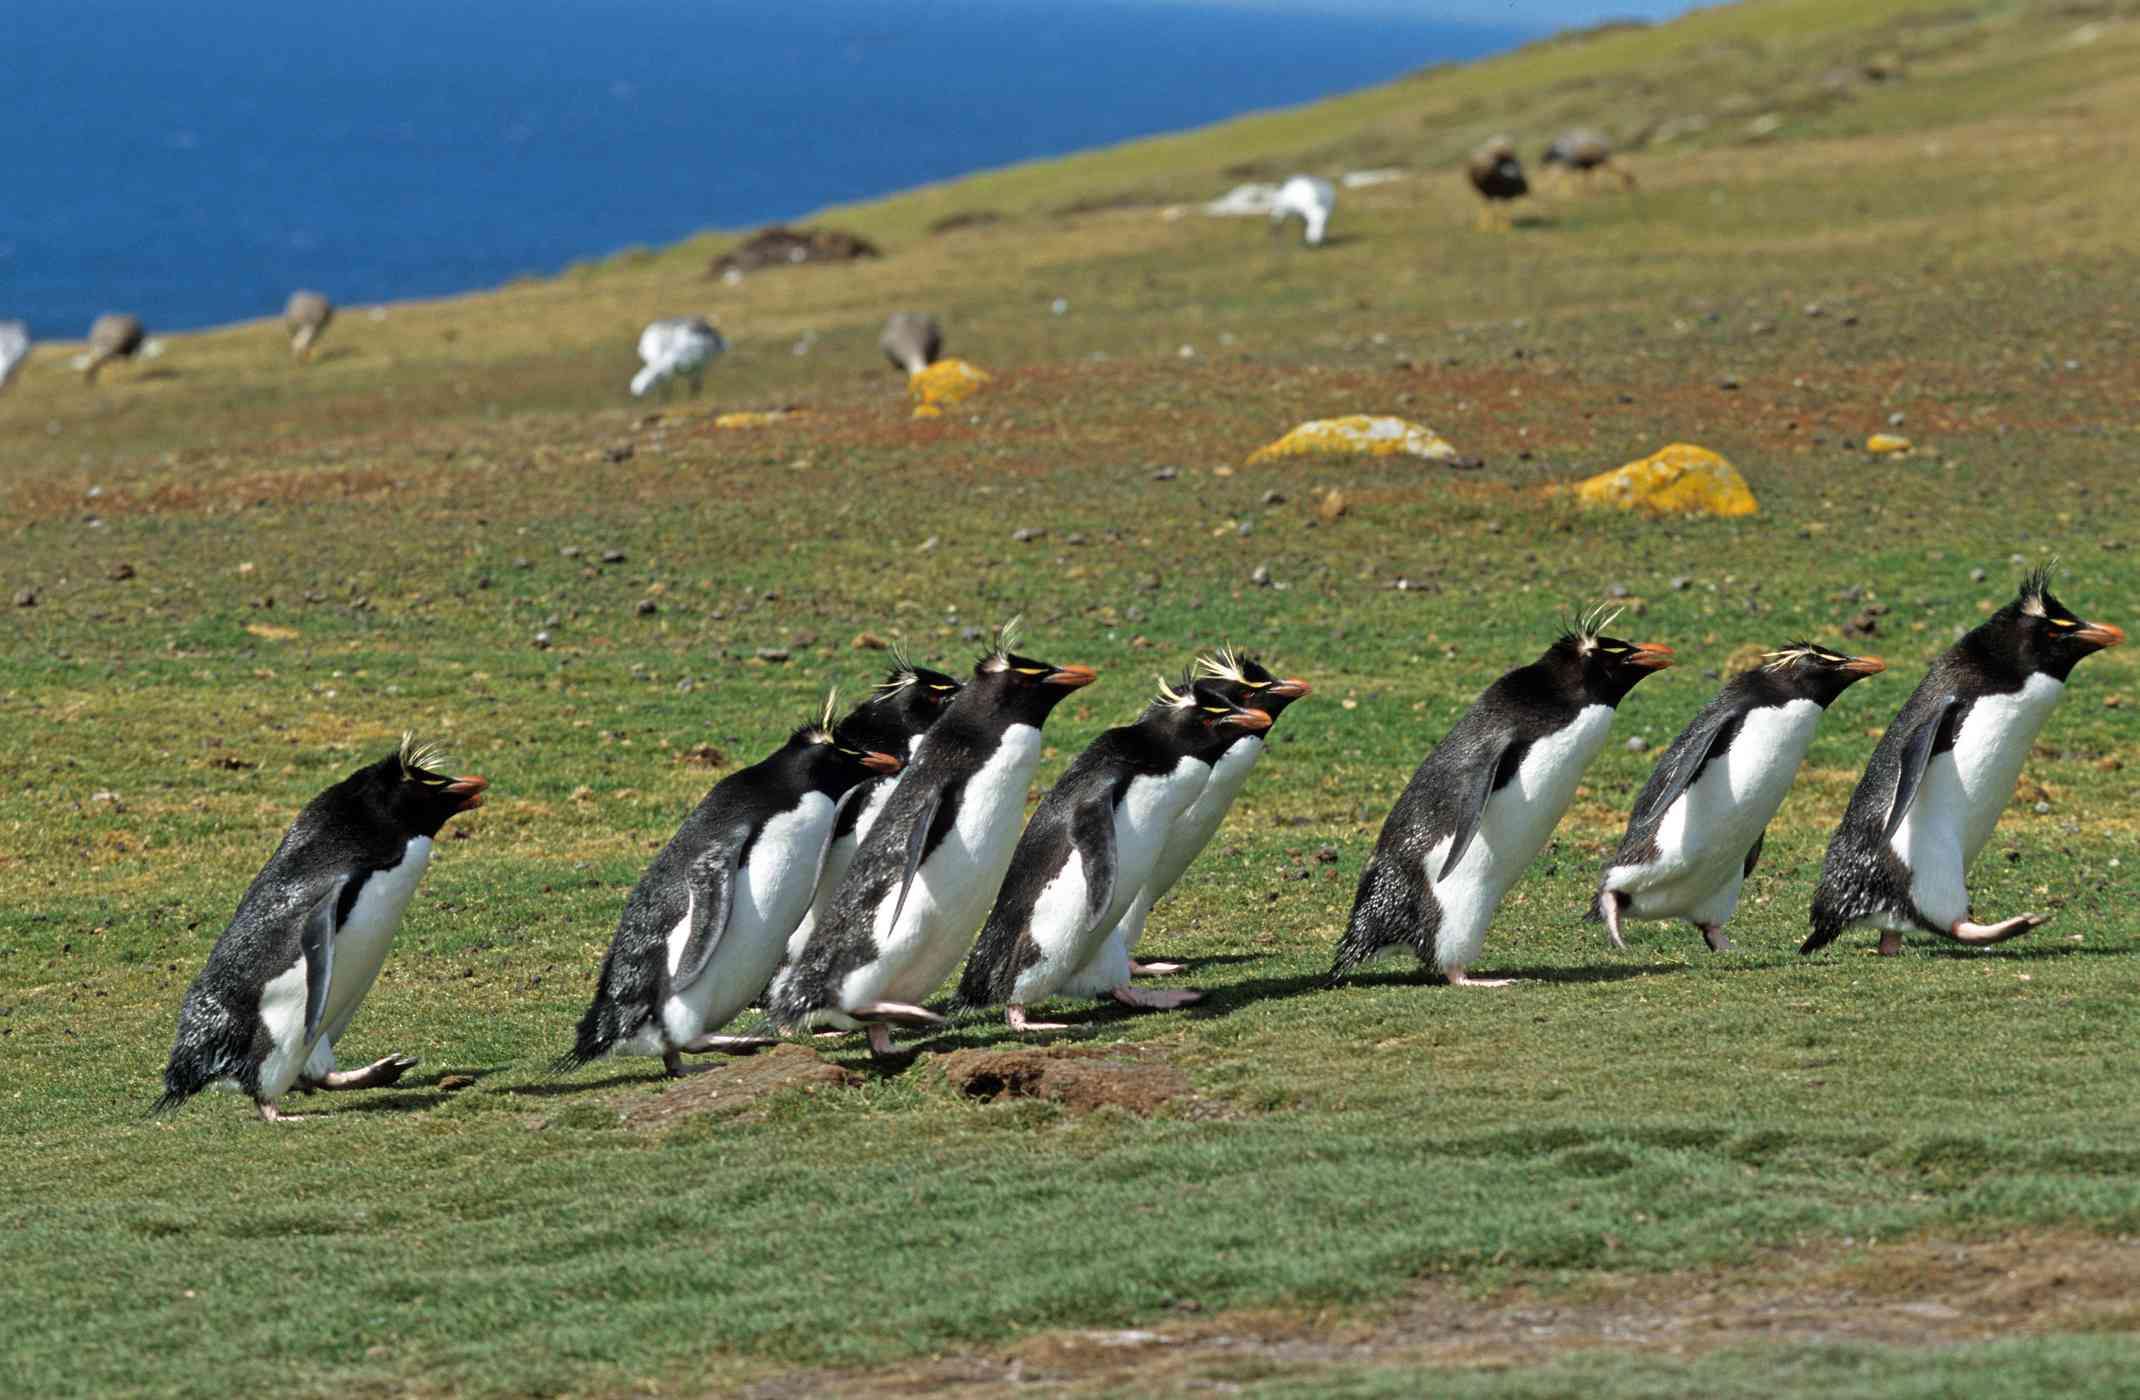 A band of crested penguins runs across a grassy landscape